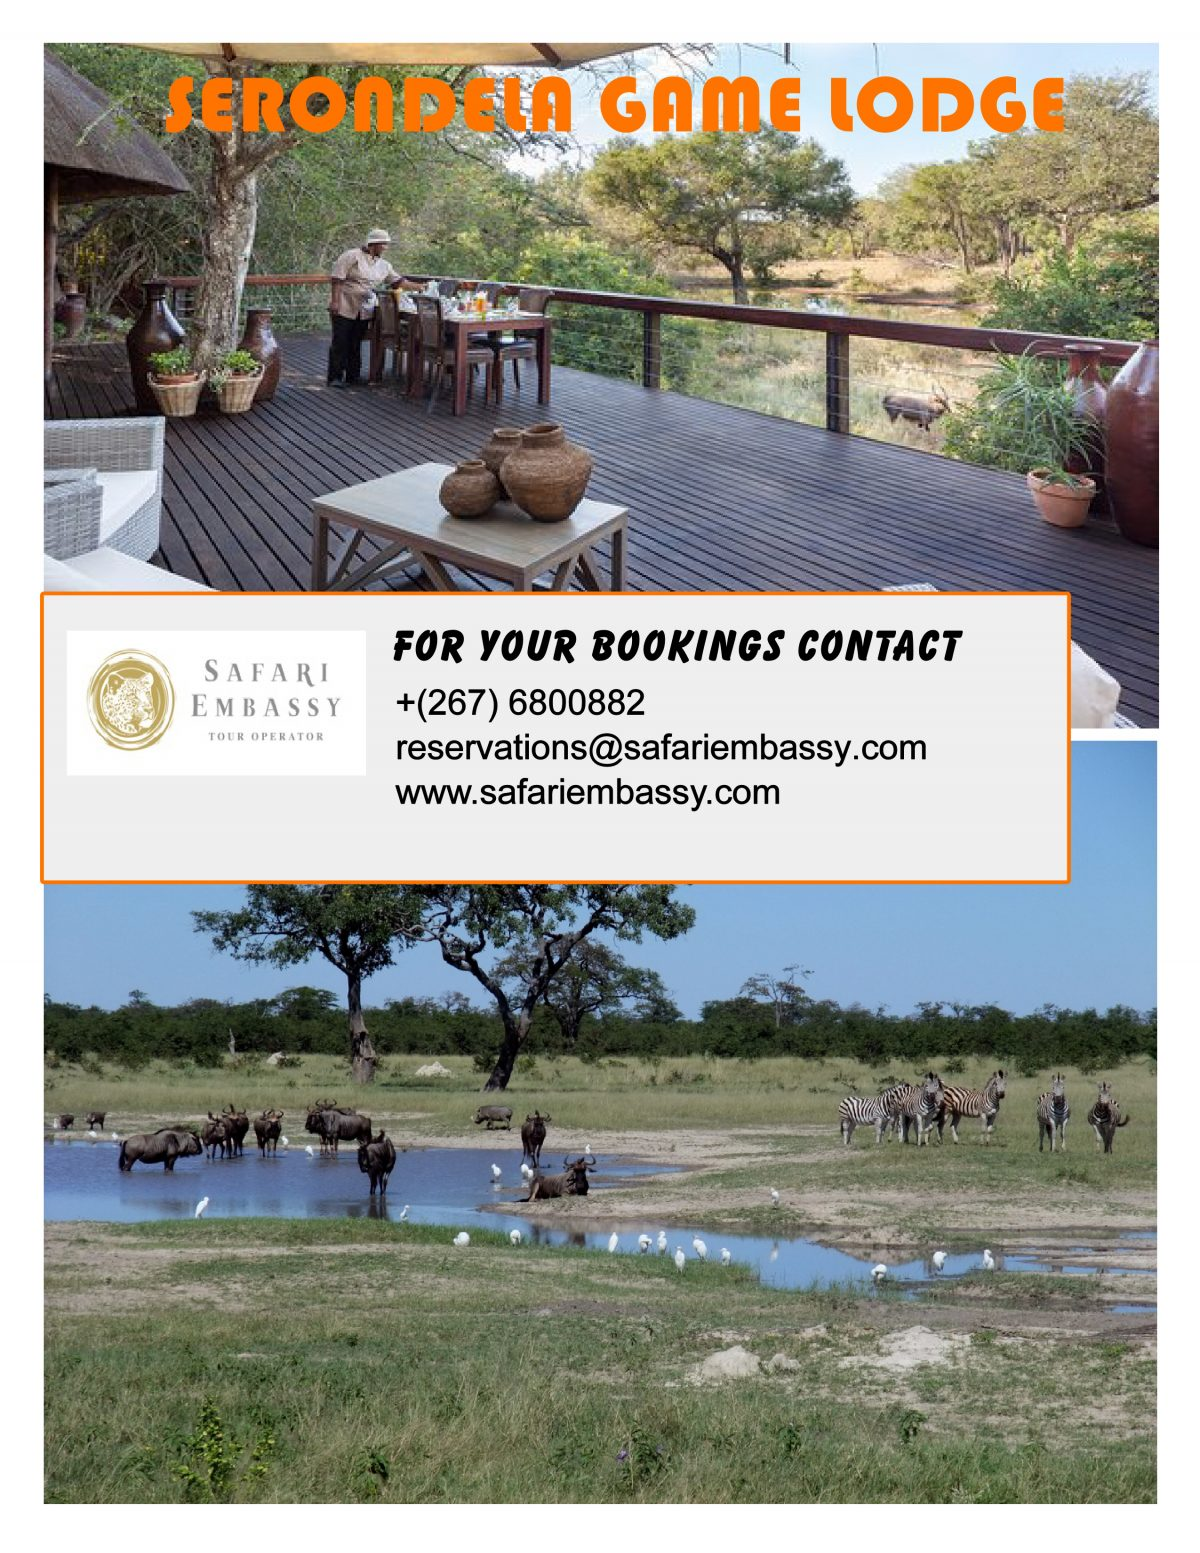 Travel to Botswana and have a wonderful safari with Safari Embassy at Serondela reserve.